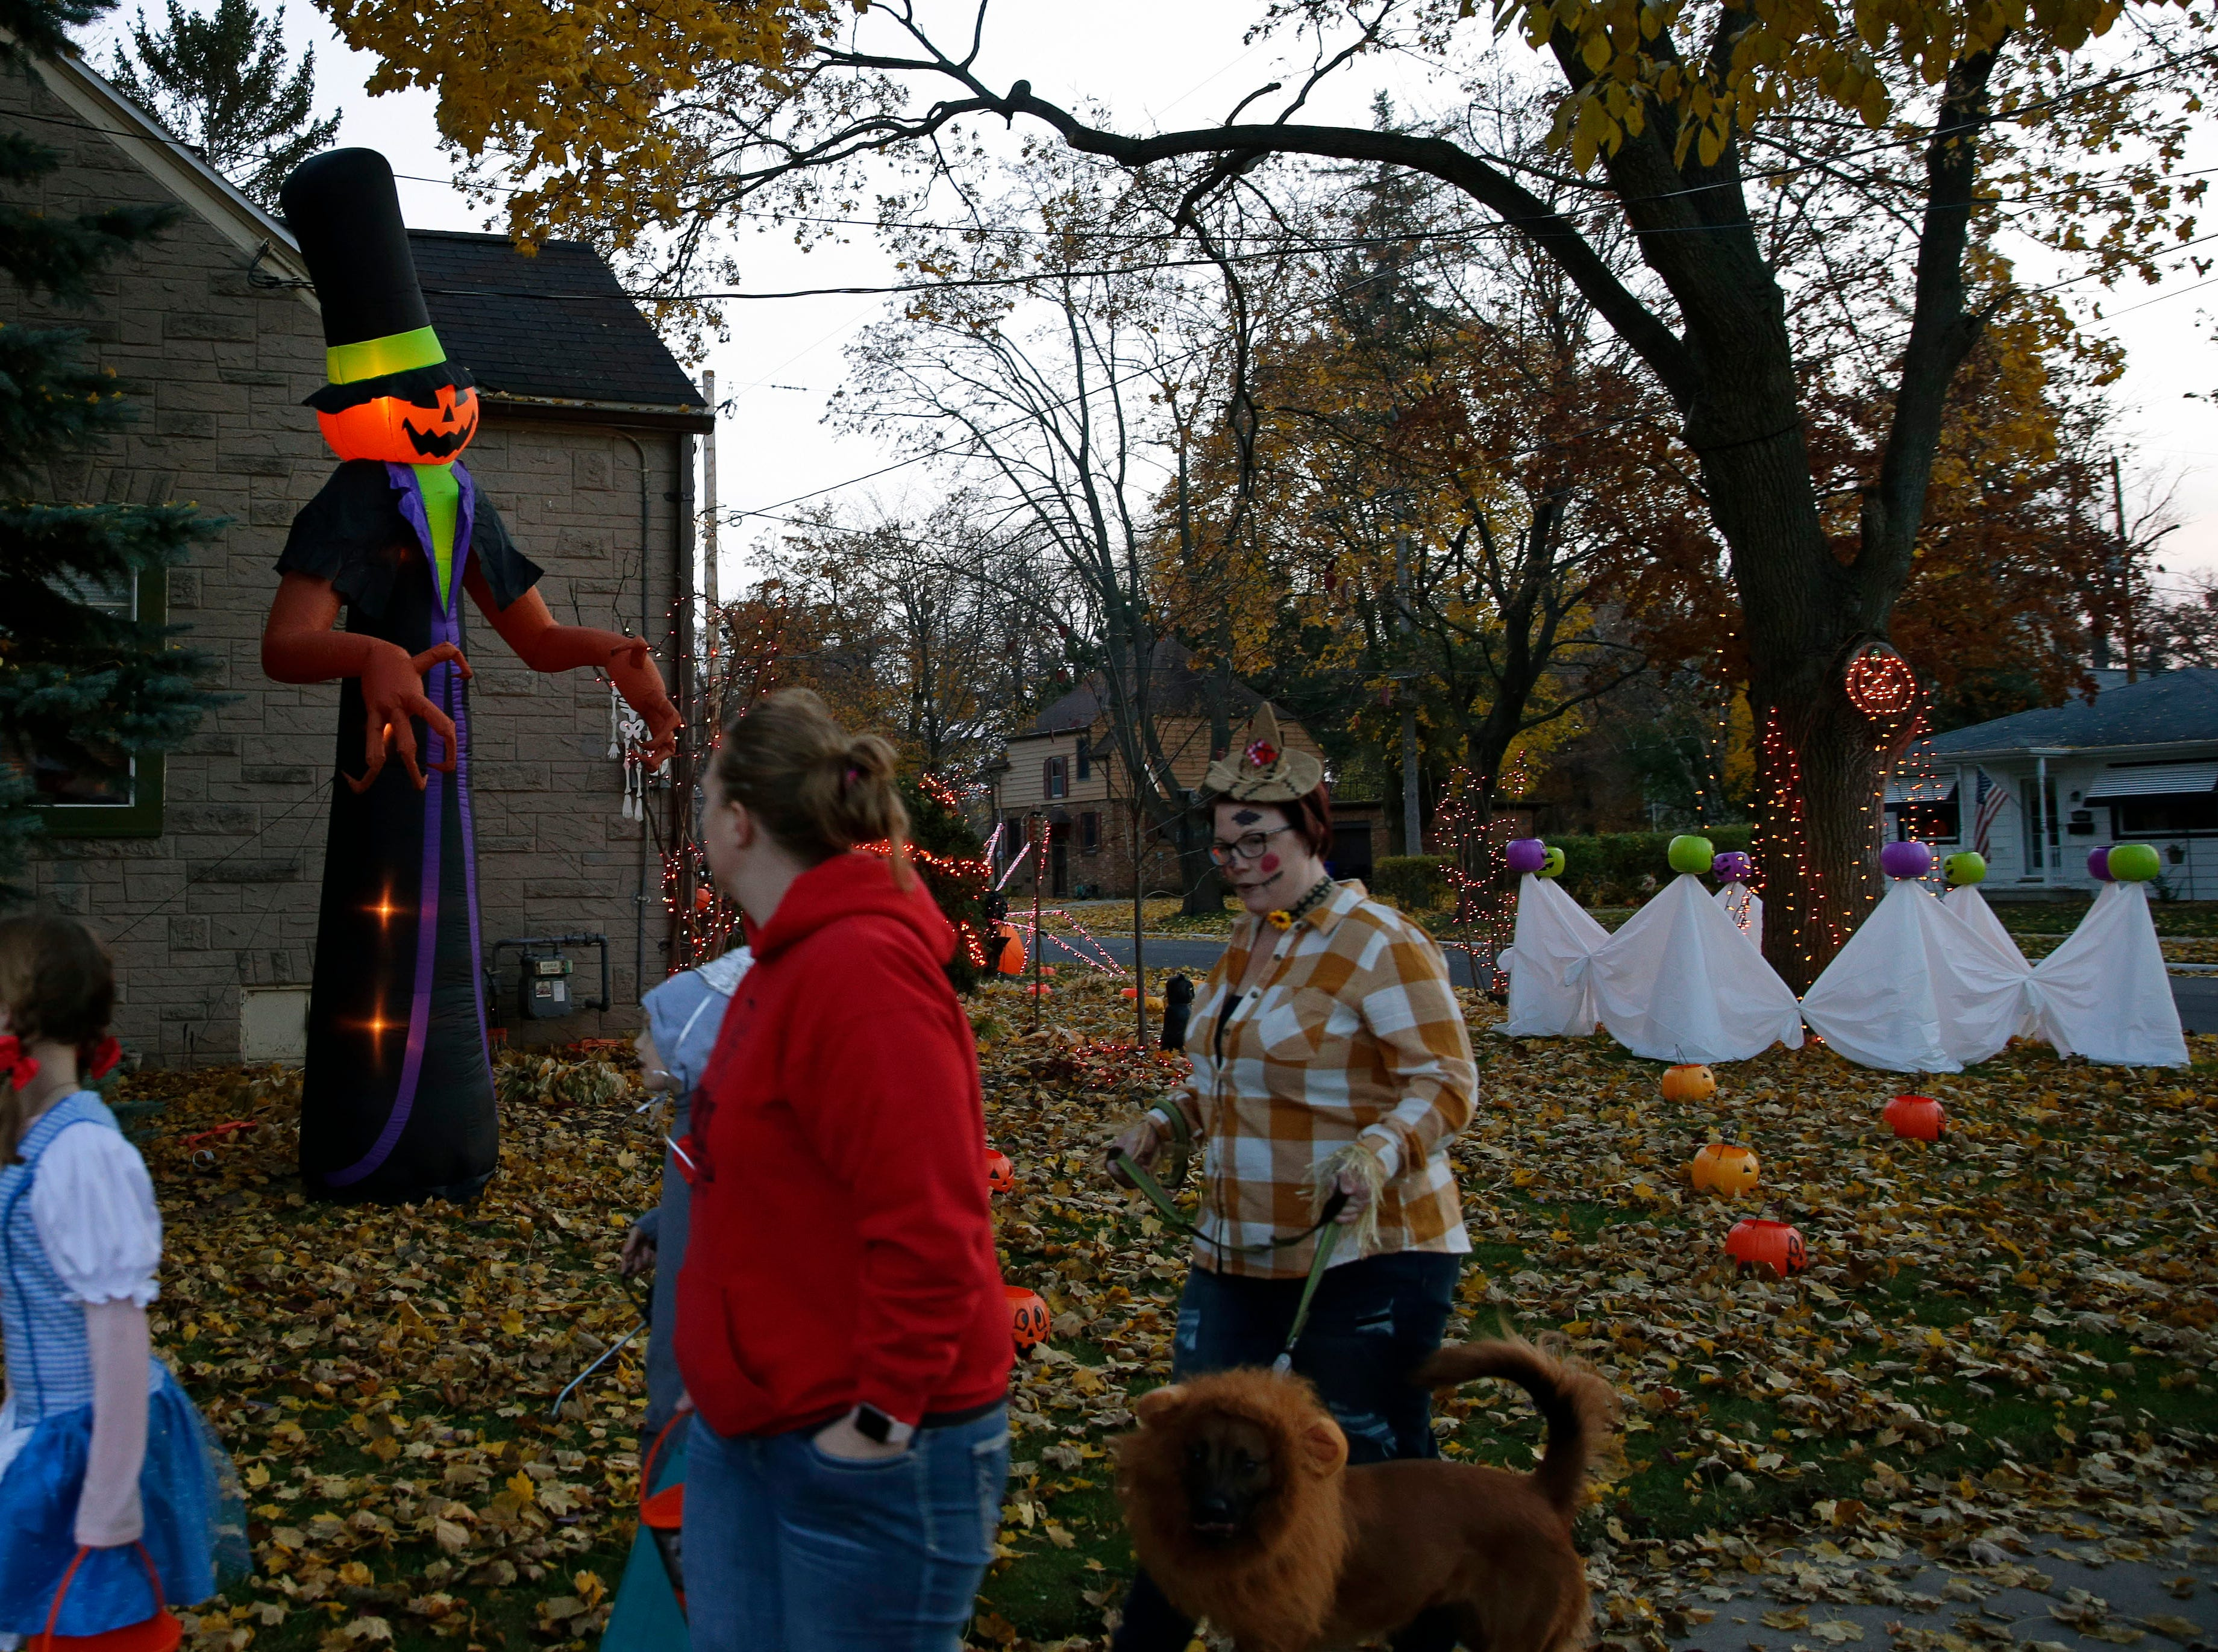 Brian Kemp has his house decorated for the big day as trick-or-treaters look at the decorations Wednesday, October 31, 2018, in Appleton, Wis.